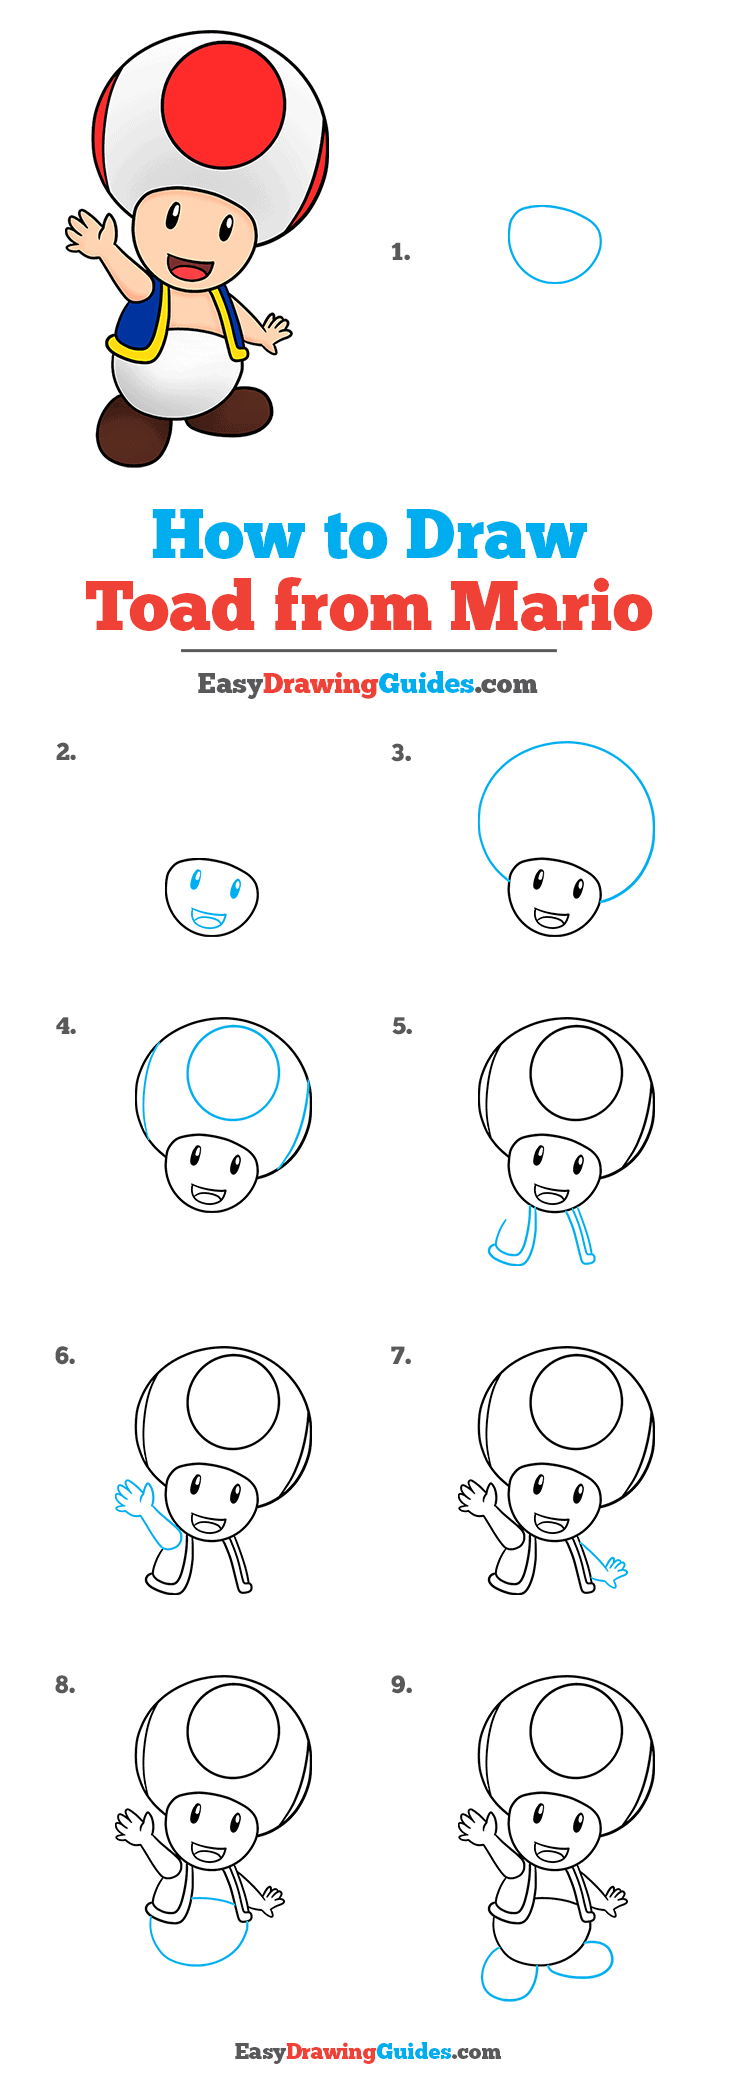 How to Draw Toad from Mario Step by Step Tutorial Image